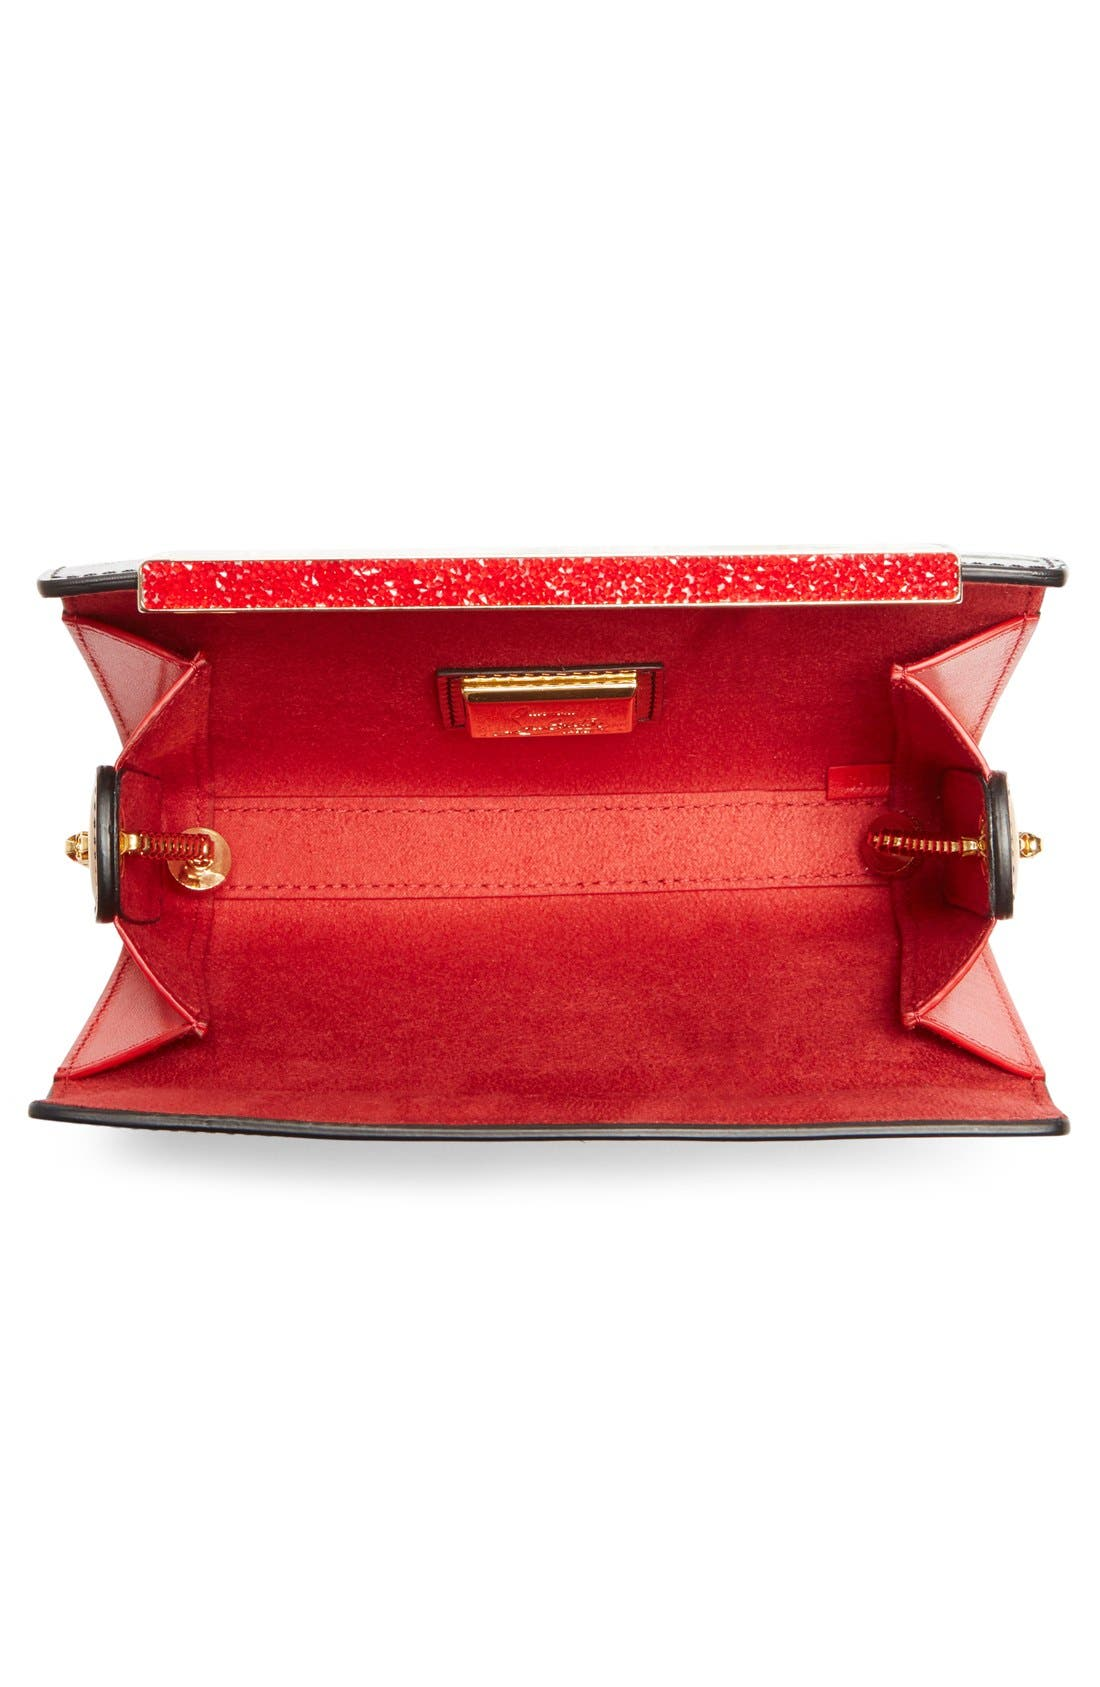 Alternate Image 3  - Christian Louboutin 'Vanité' Printed Leather Clutch